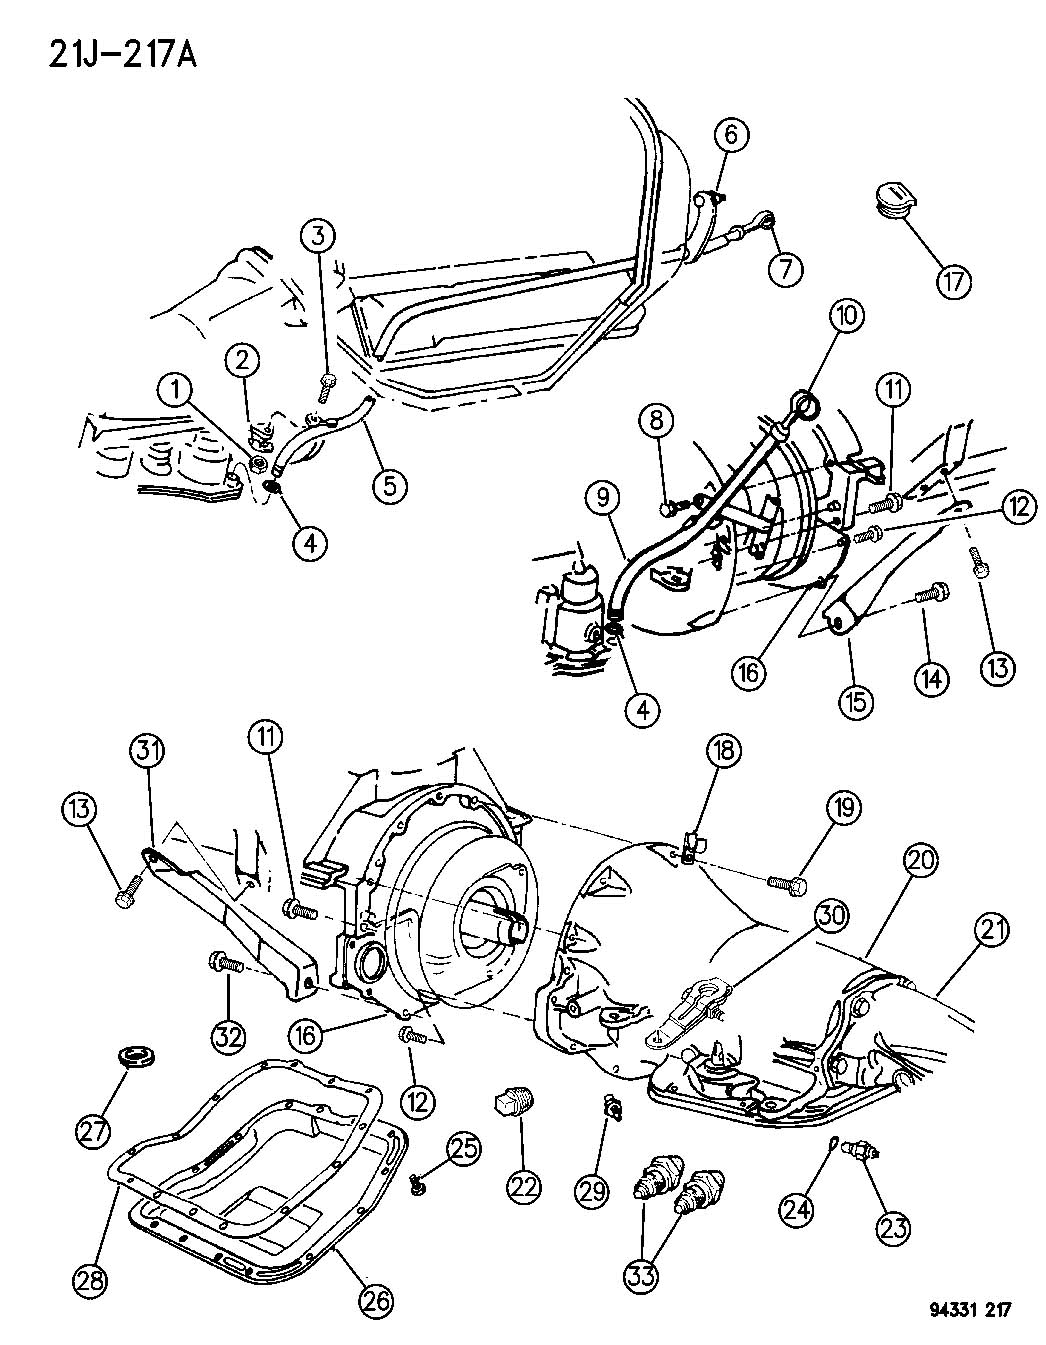 1997 Dodge Ram 46re Transmission Diagrams